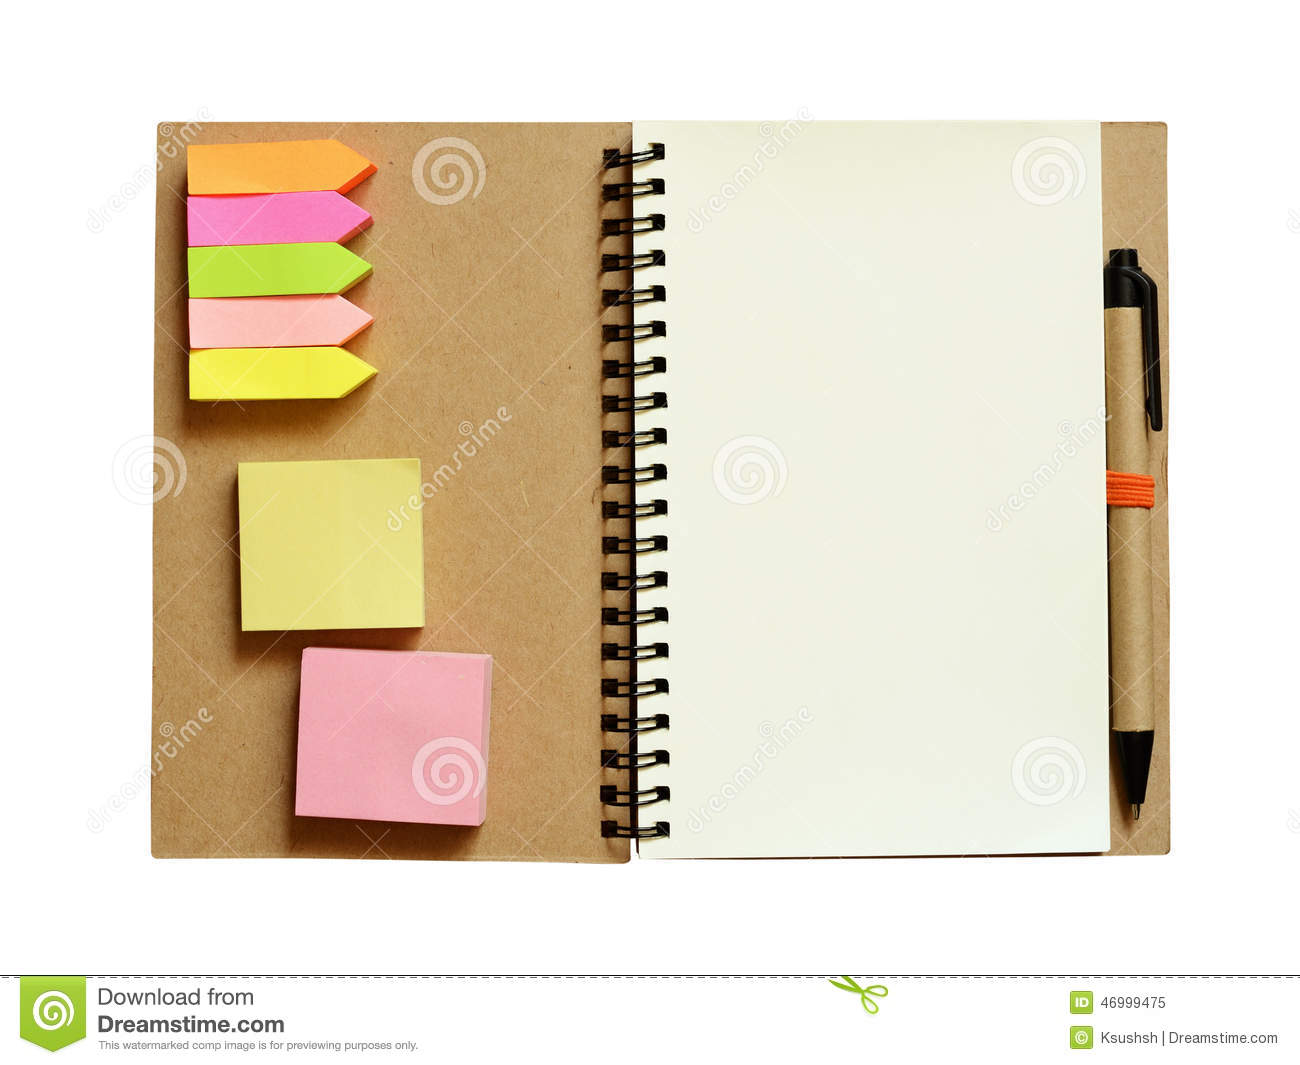 Writing services online notebook